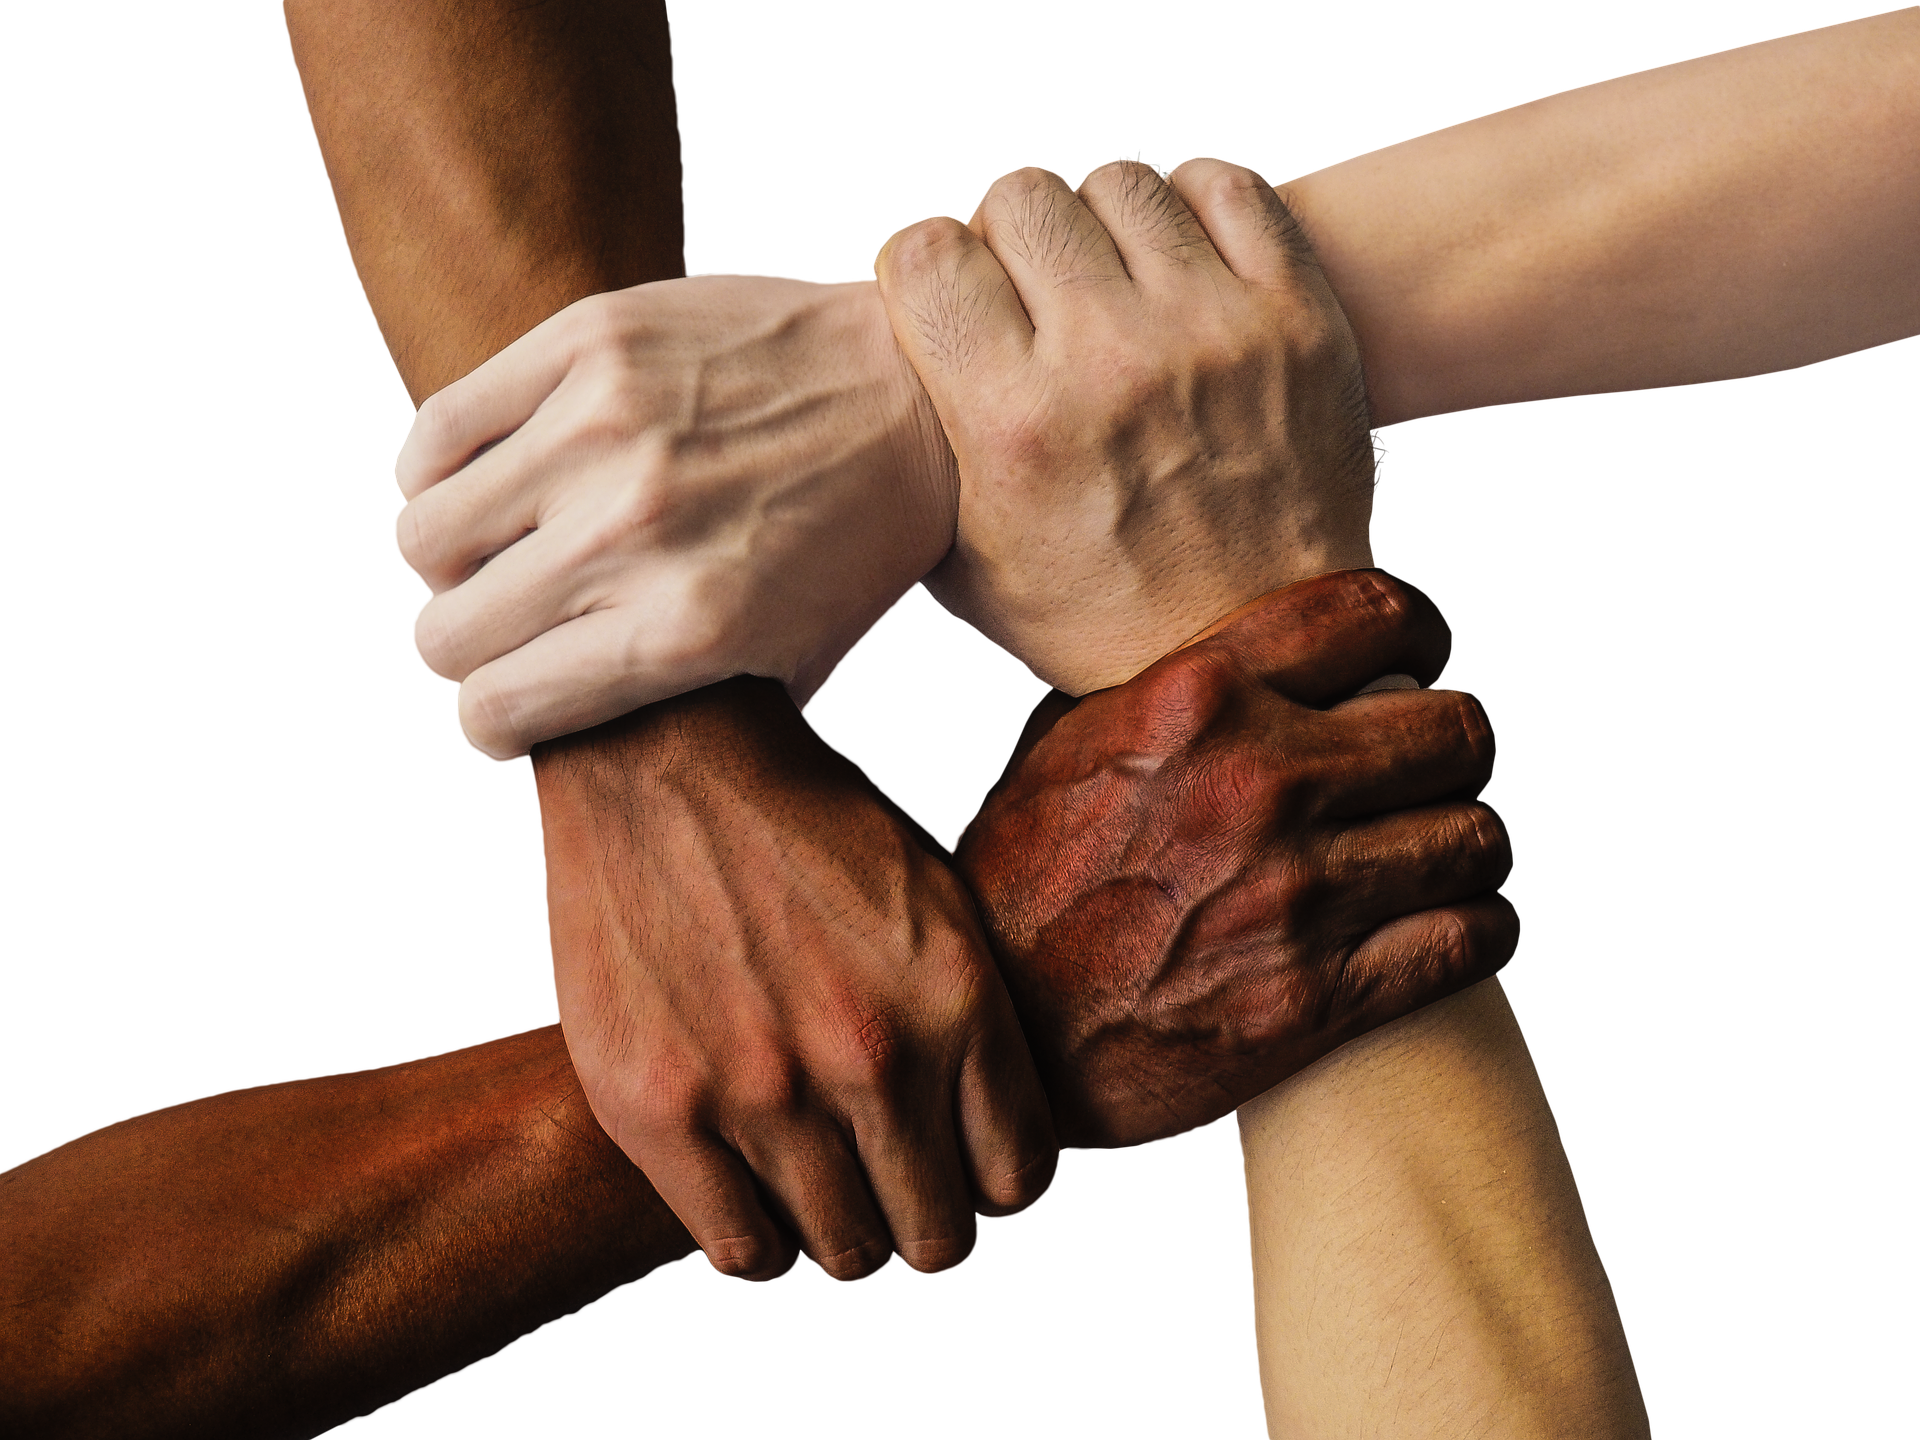 Disability Rights - Multi Ethnic Hands forming a square